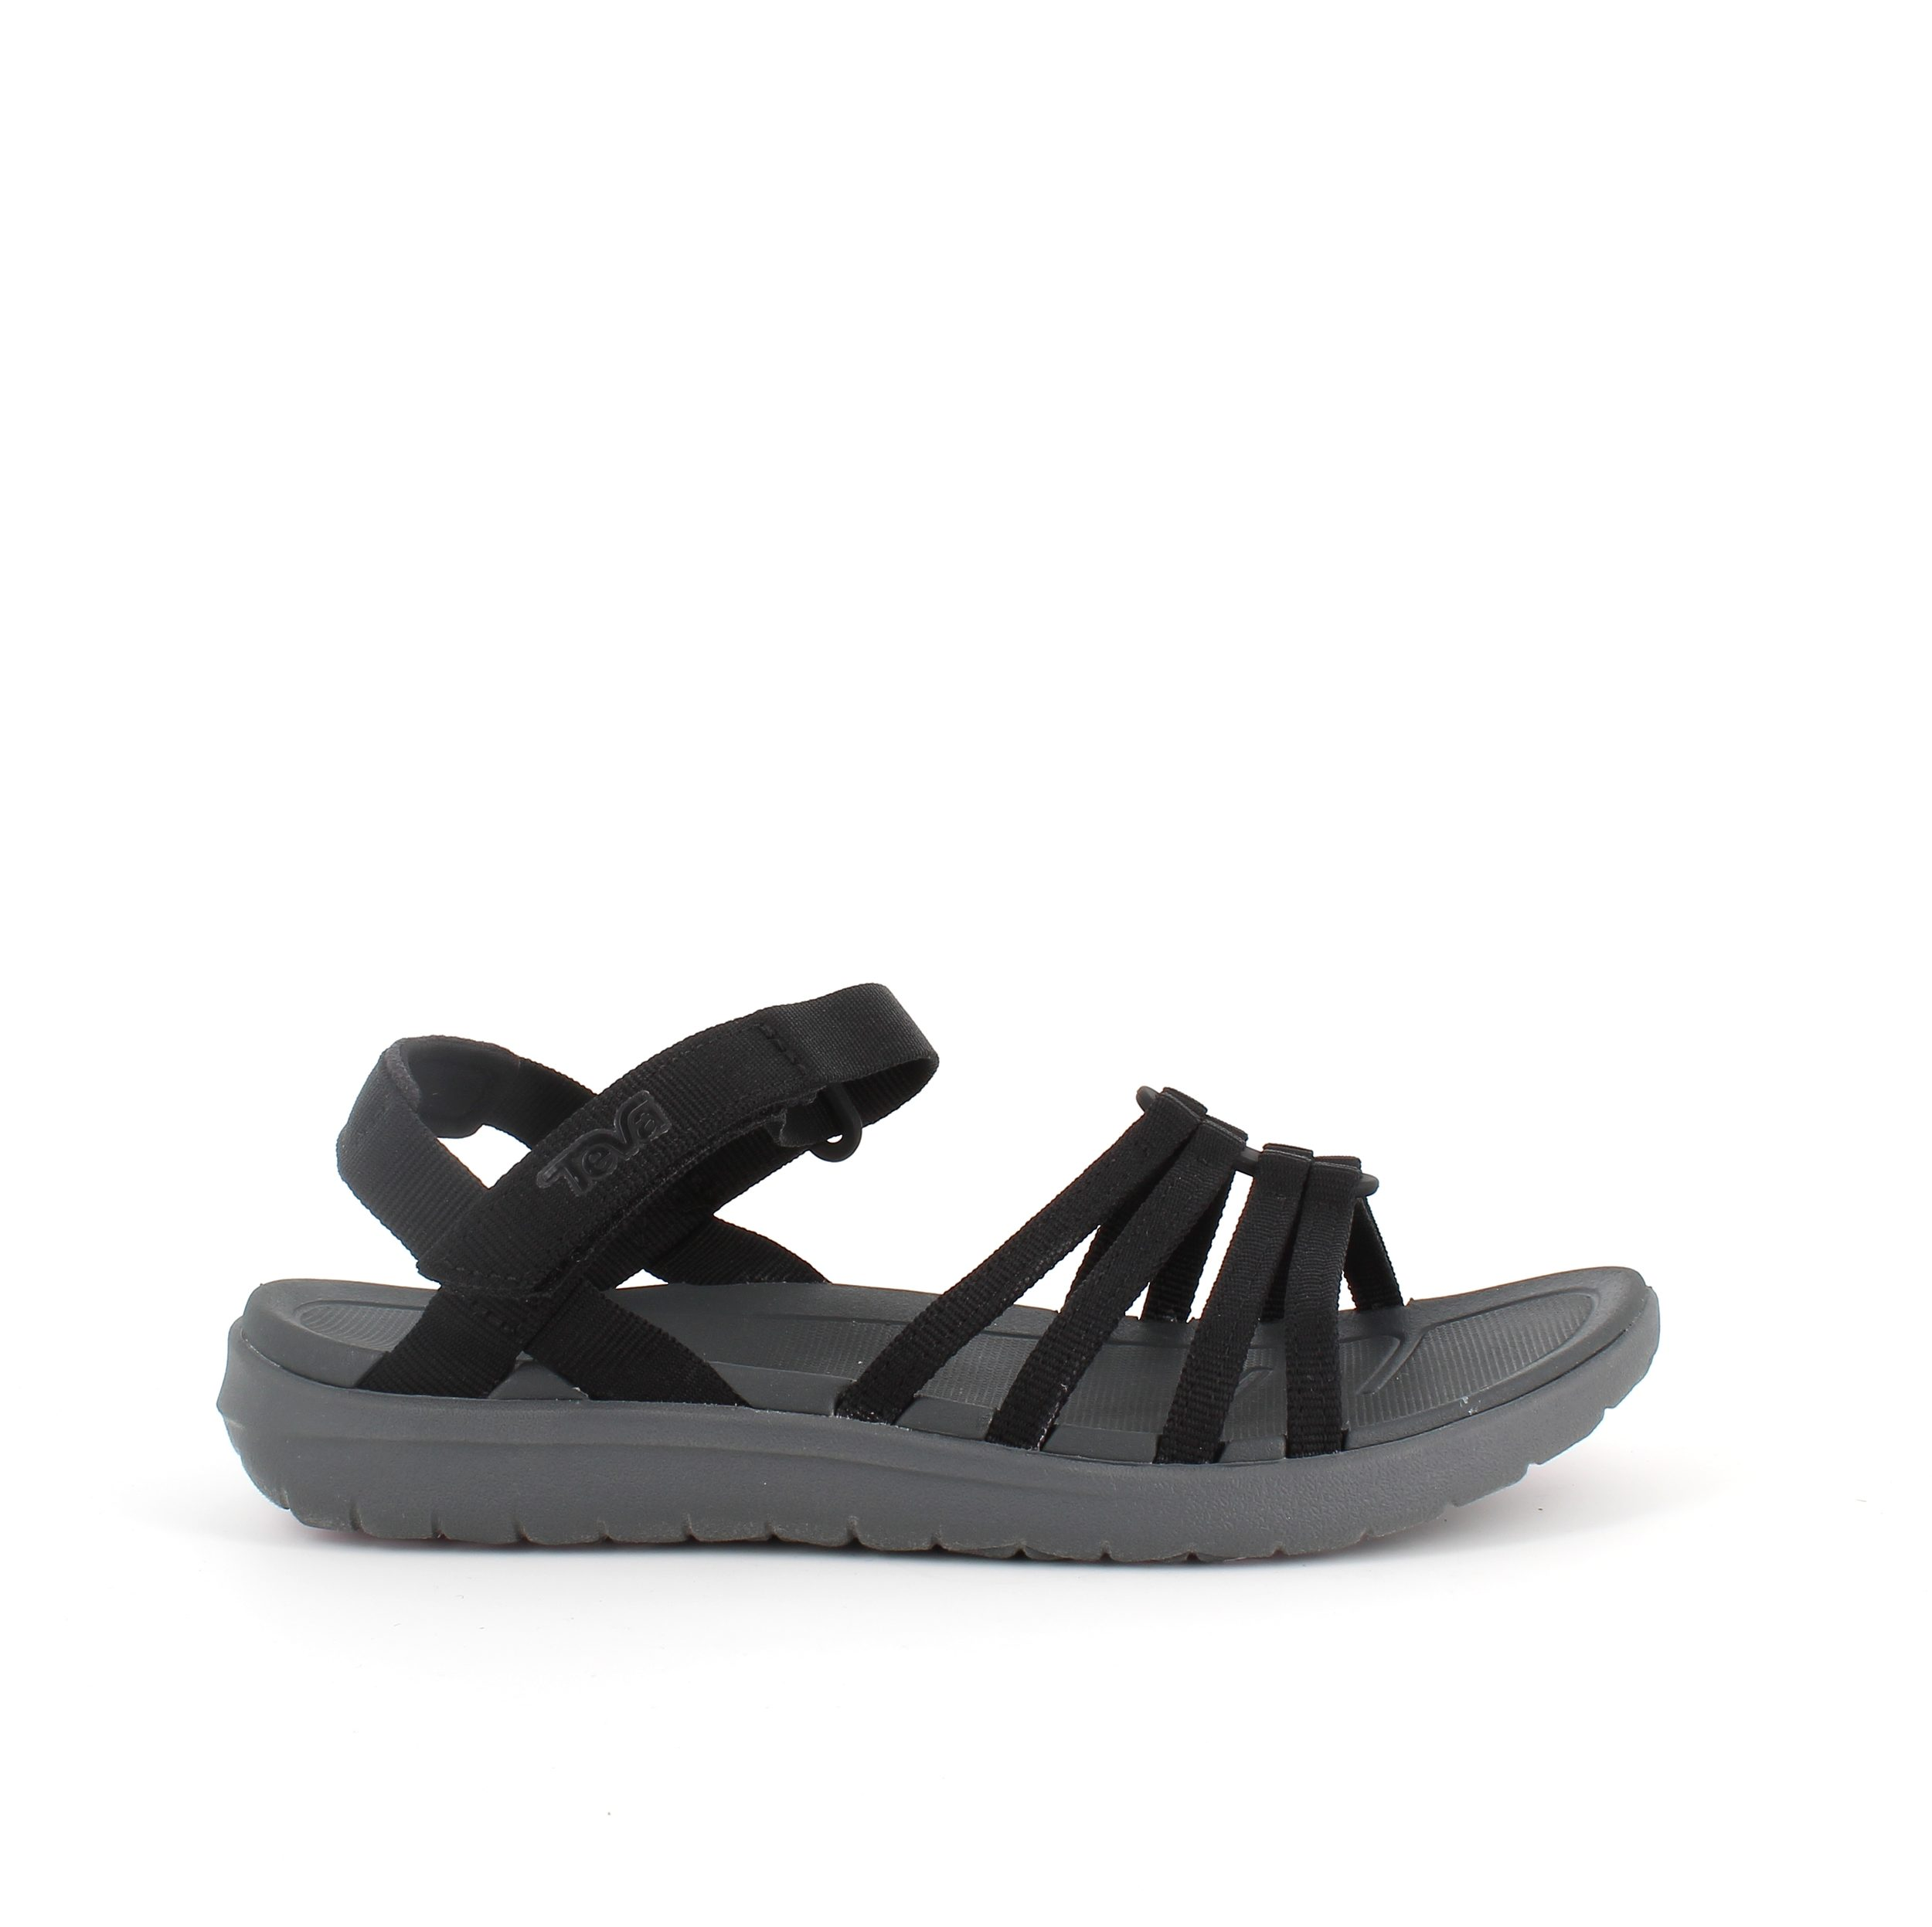 Image of   Teva Sanborn sort sandal - 37